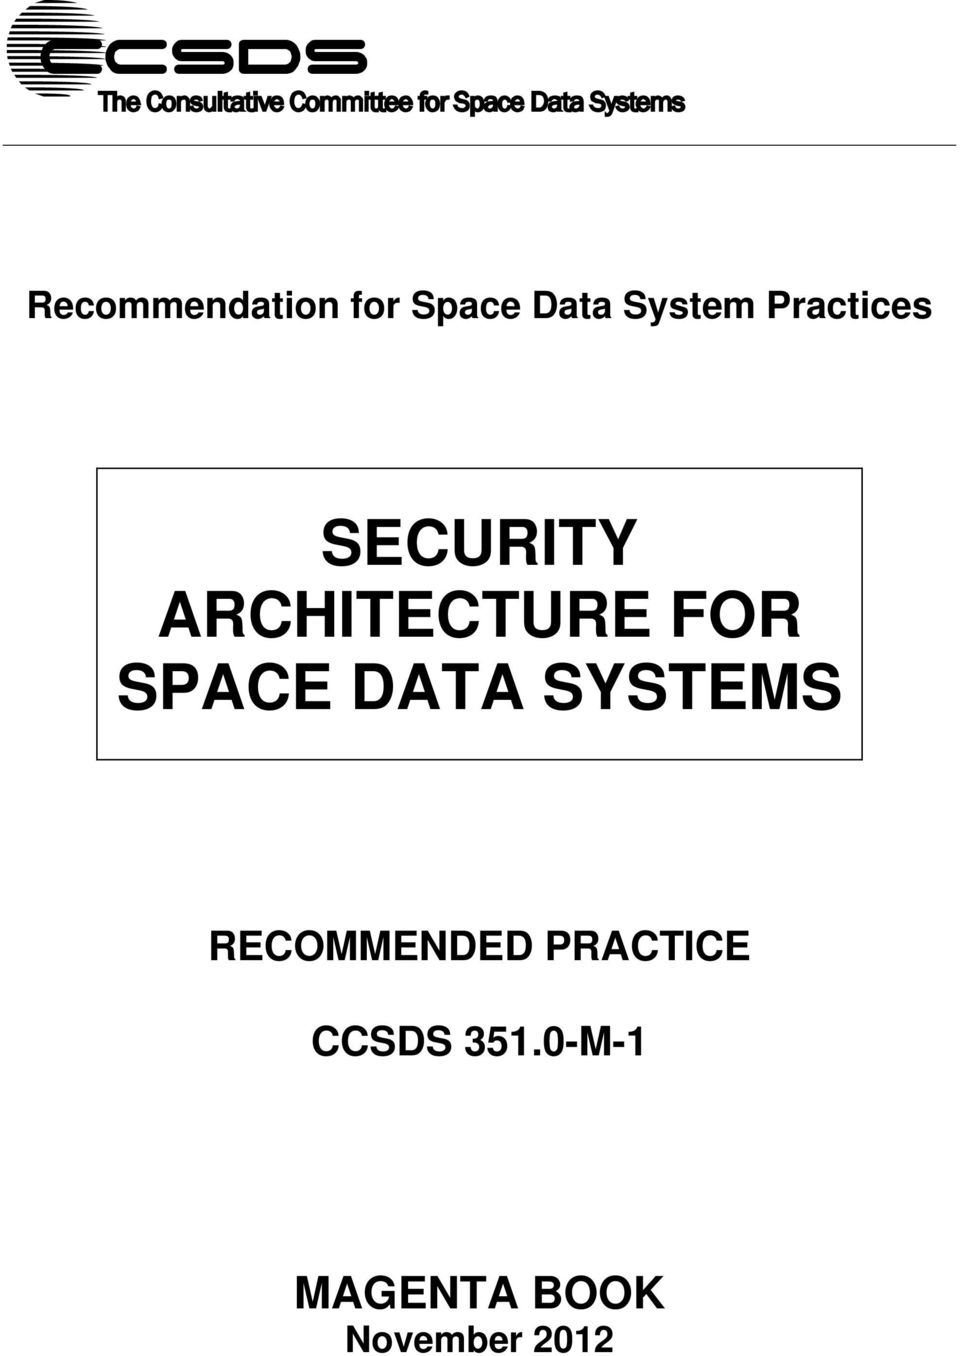 SPACE DATA SYSTEMS RECOMMENDED